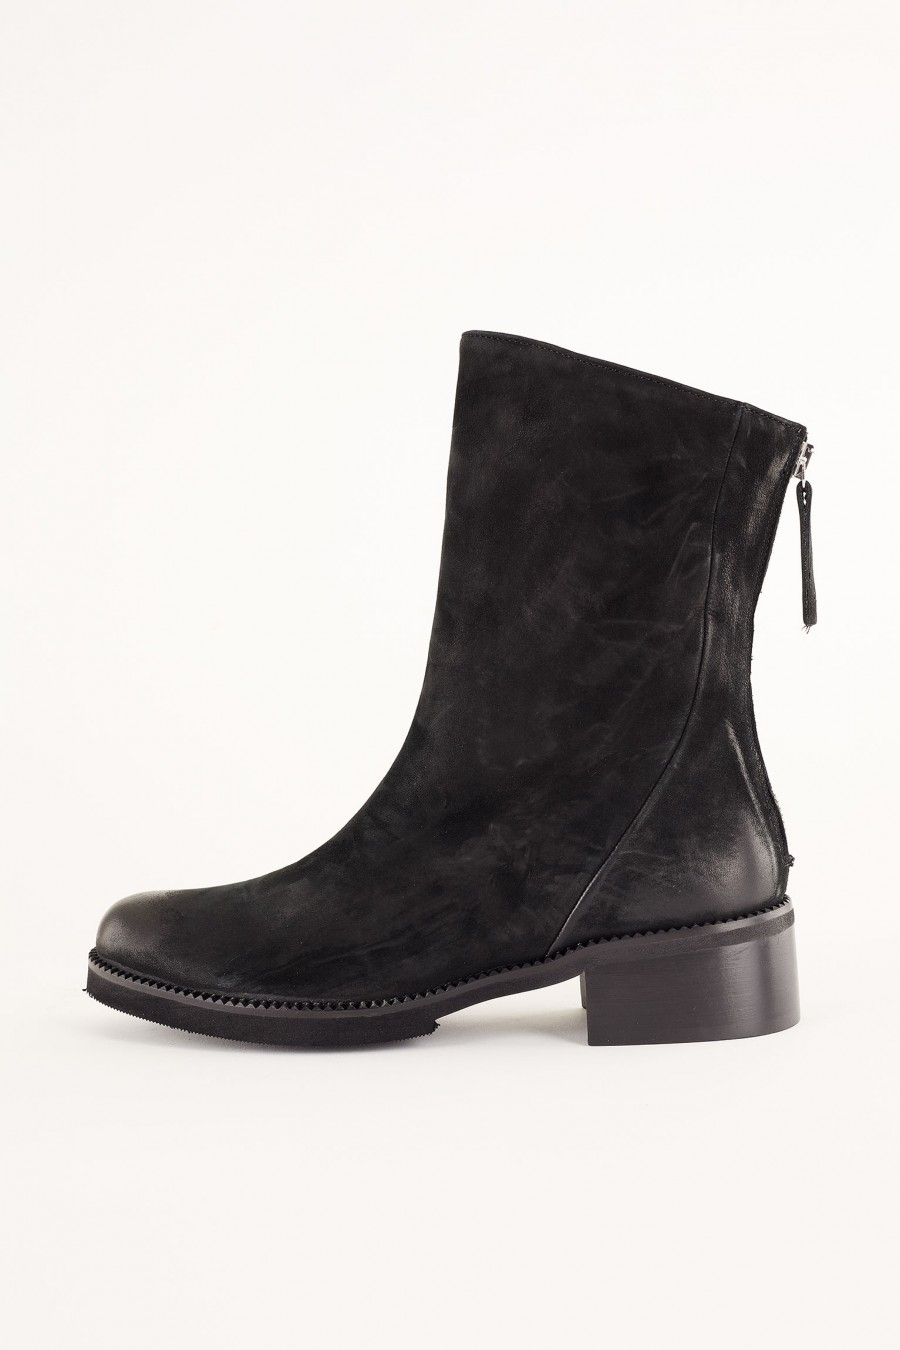 soft leather casual boots with zip